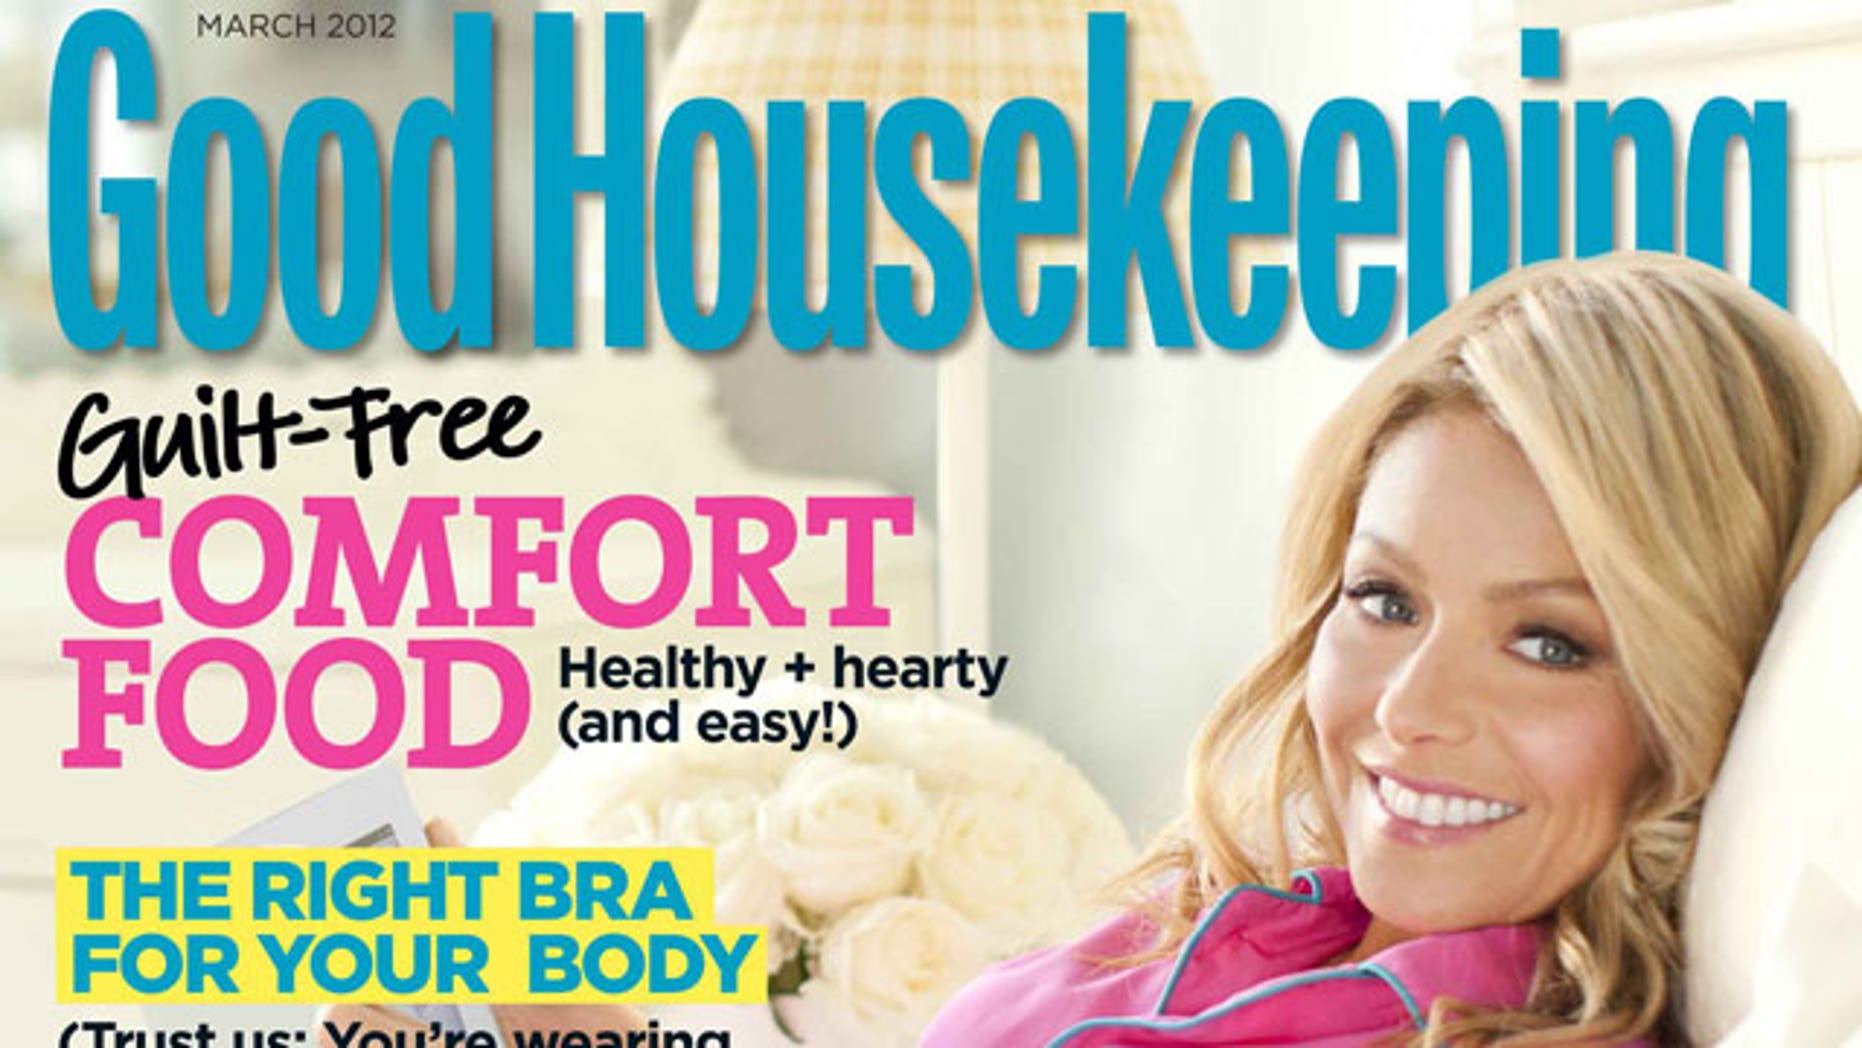 Kelly Ripa on the March cover of Good Housekeeping.